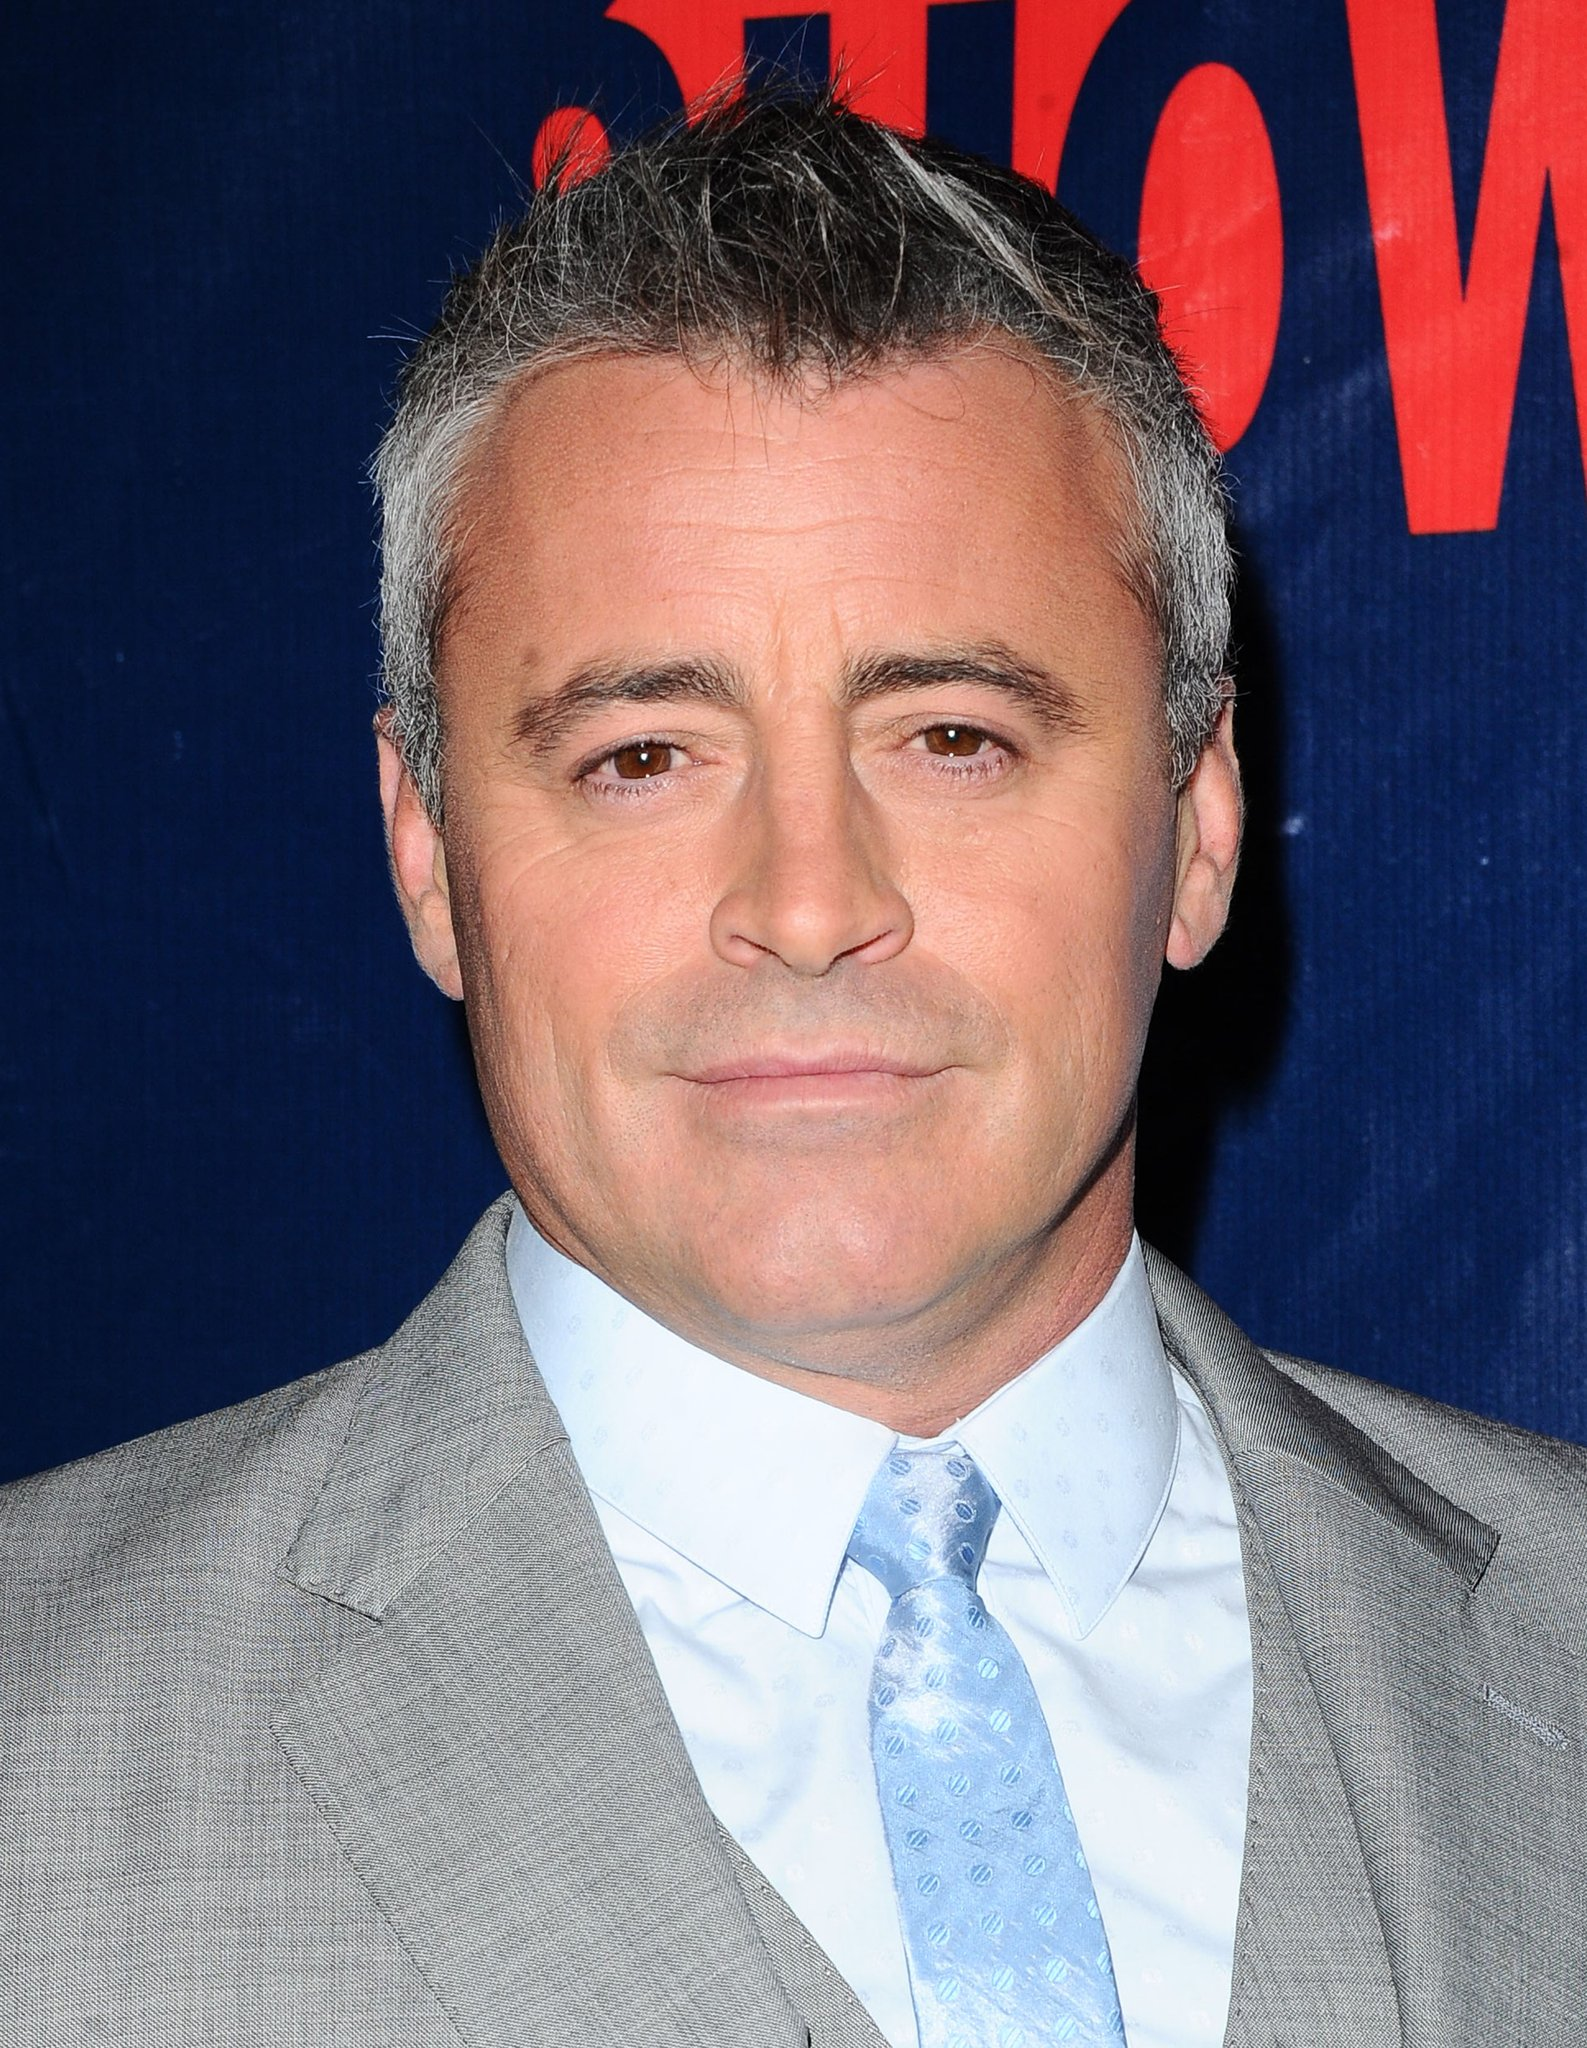 This A-list Hollywood star asked Matt LeBlanc if she could come on Top Gear... https://t.co/Gv46wrRUAV https://t.co/M4KO89knvT